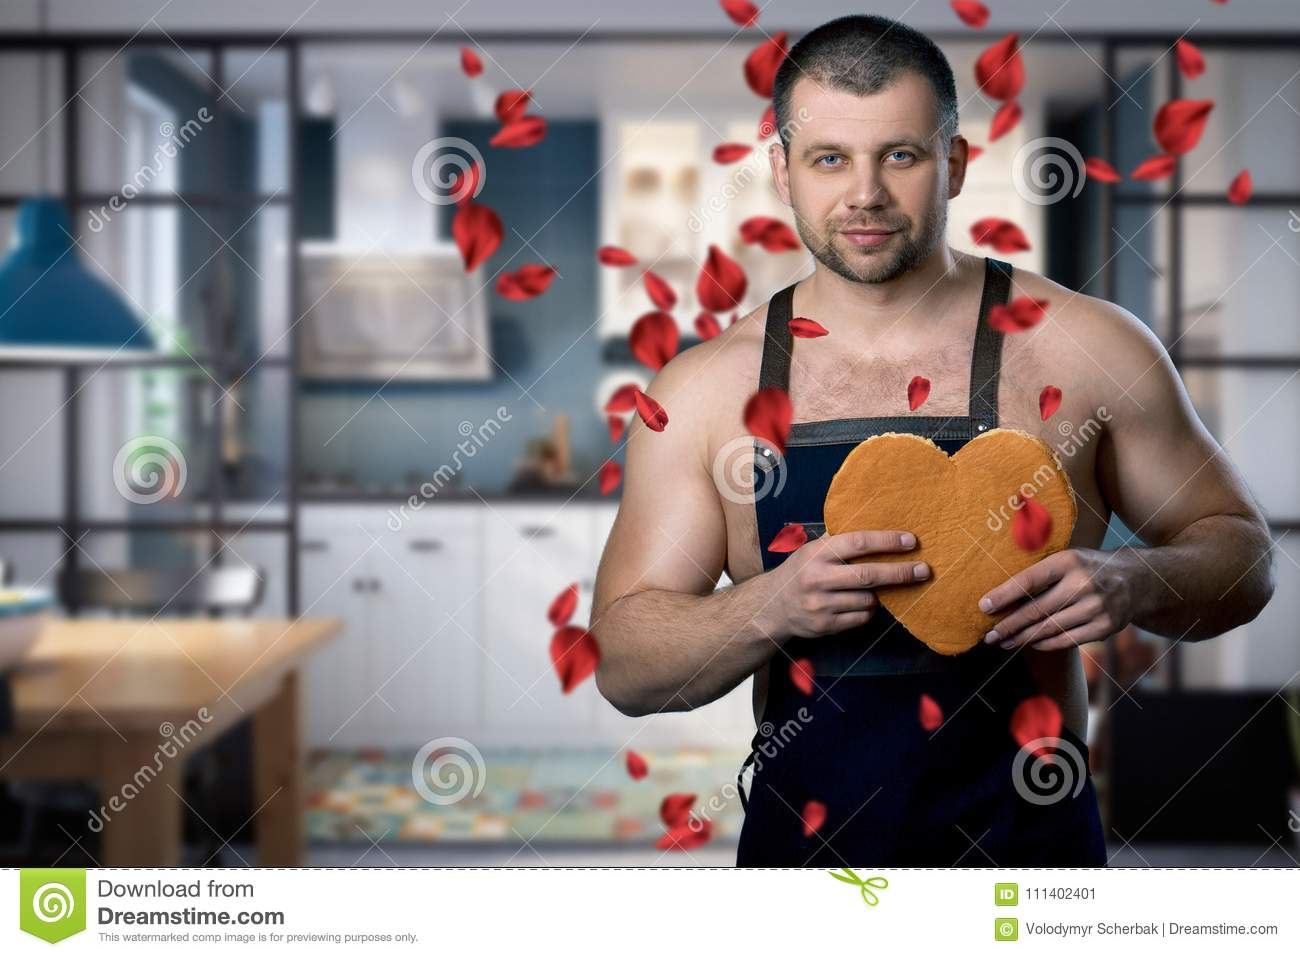 Handsome man standing in the kitchen with a biscuit heart in his hands. rose petals falling on the man. A man is dressed in an apr